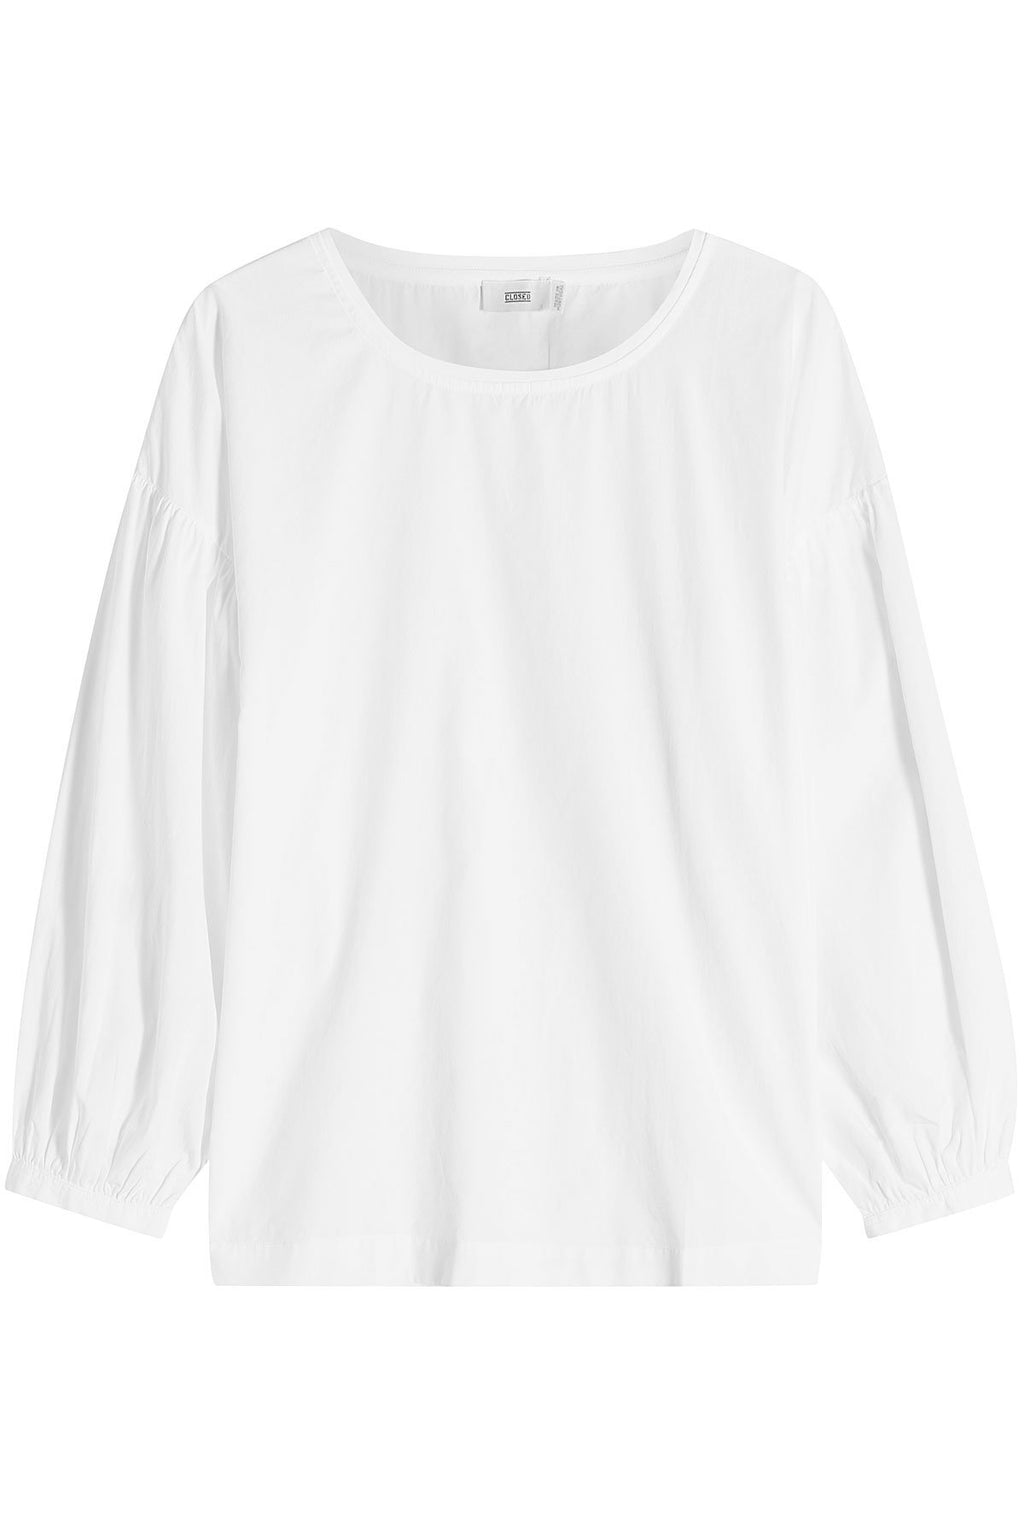 Closed - White Round-neck Long Sleeved Cotton Blouse